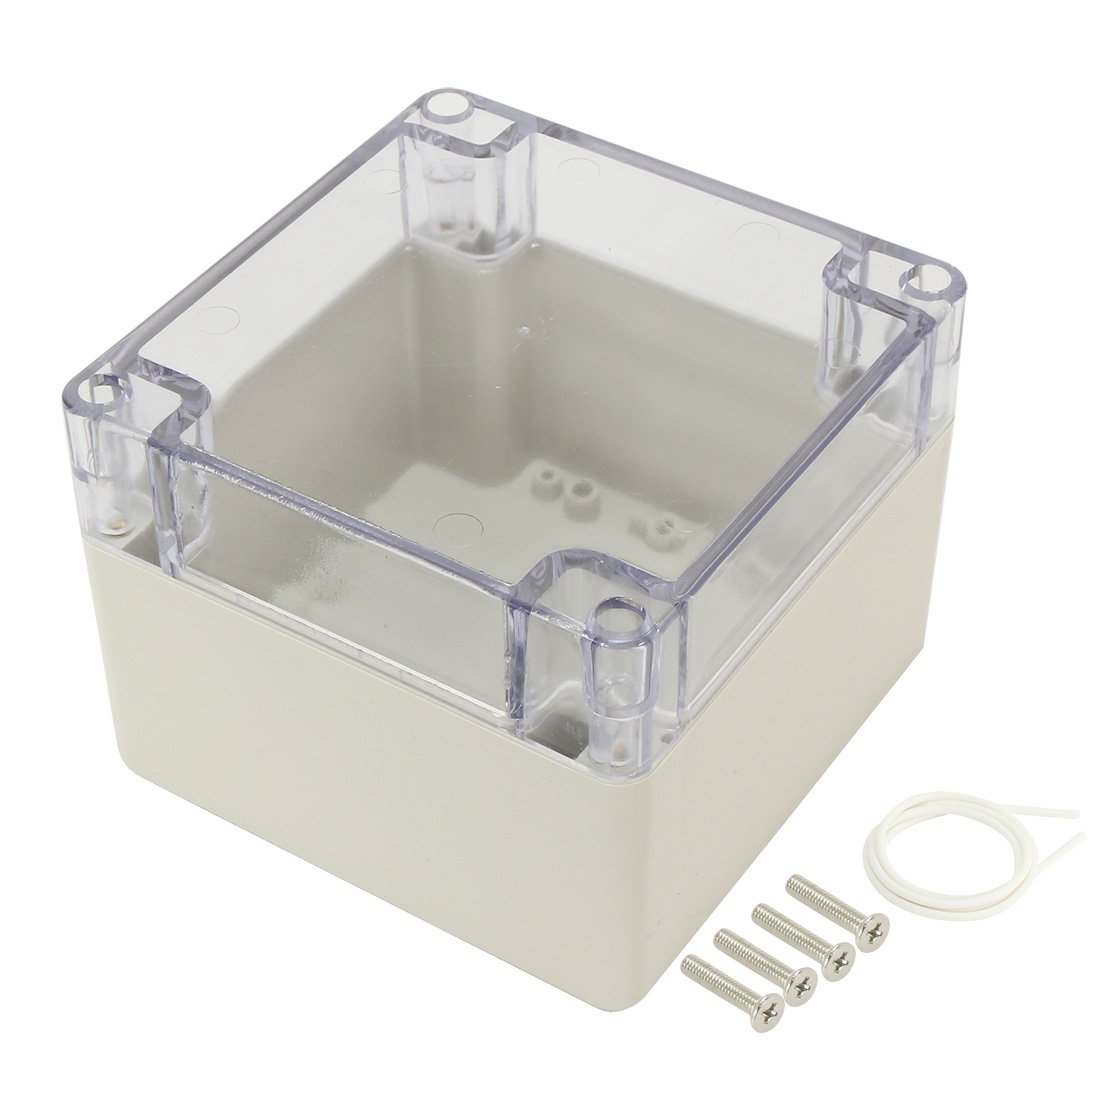 uxcell 4.7x4.7x3.5(120mmx120mmx90mm) ABS Junction Box Universal Project Enclosure with PC Transparent Cover a17031600ux1123